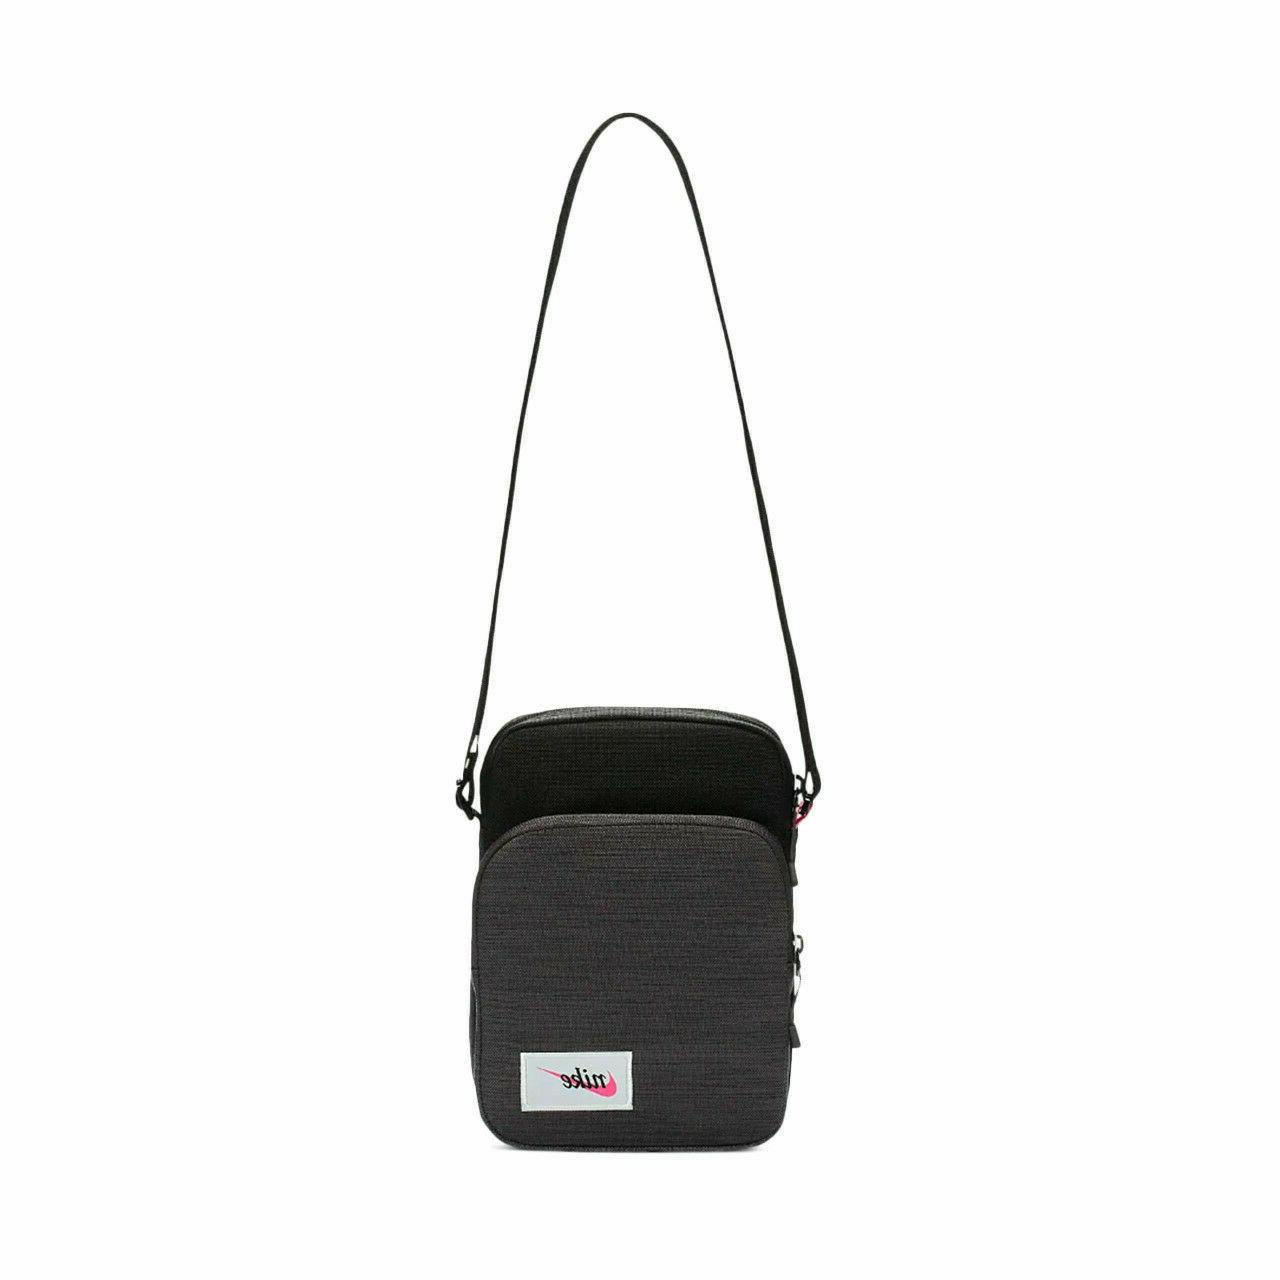 heritage small shoulder bag ba5809 011